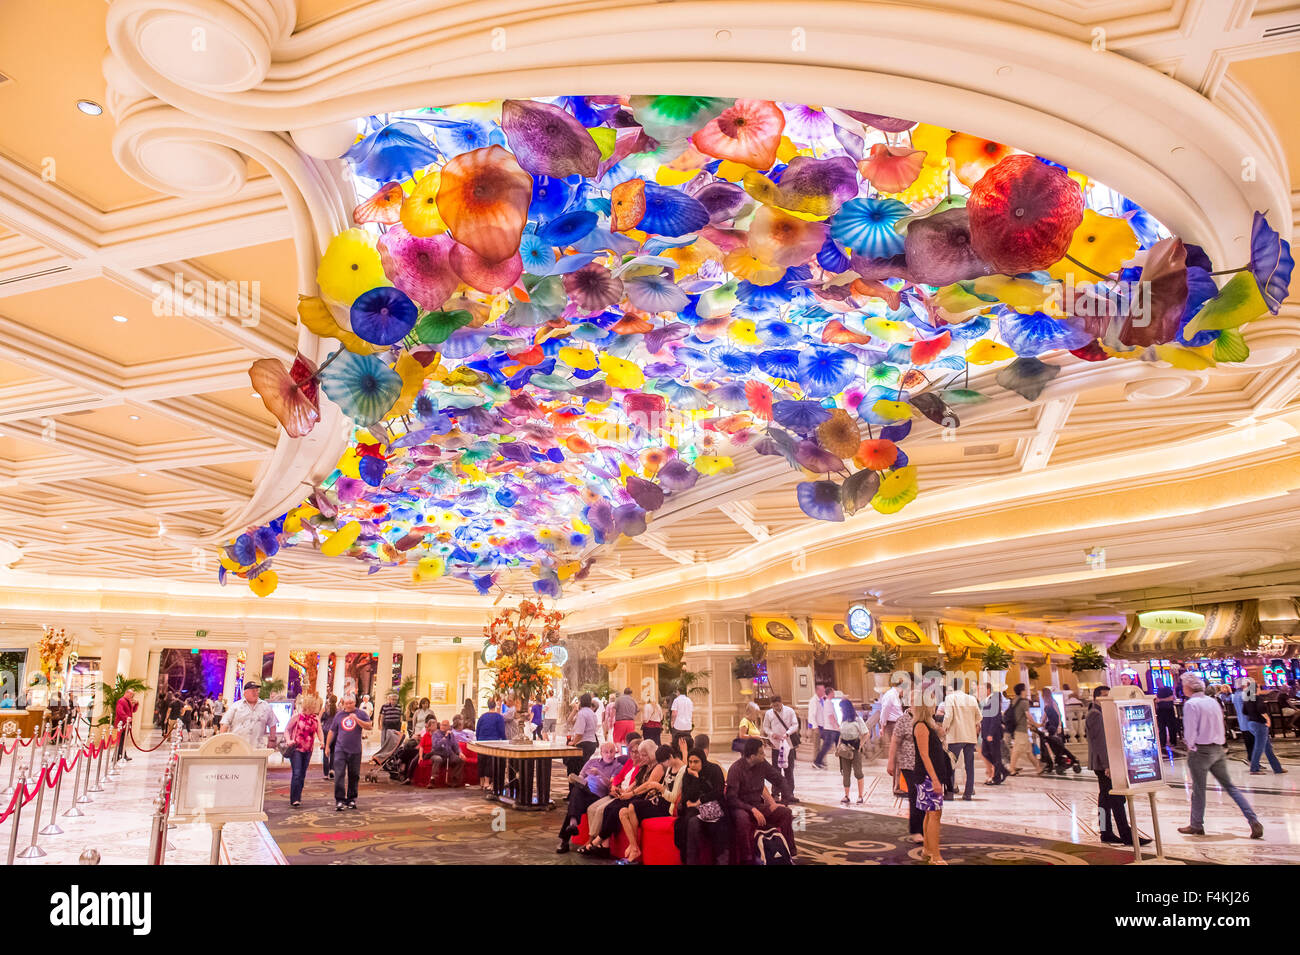 Bellagio las vegas bellagio hotel las vegas - The Interior Of Bellagio Hotel And Casino In Las Vegas Stock Image